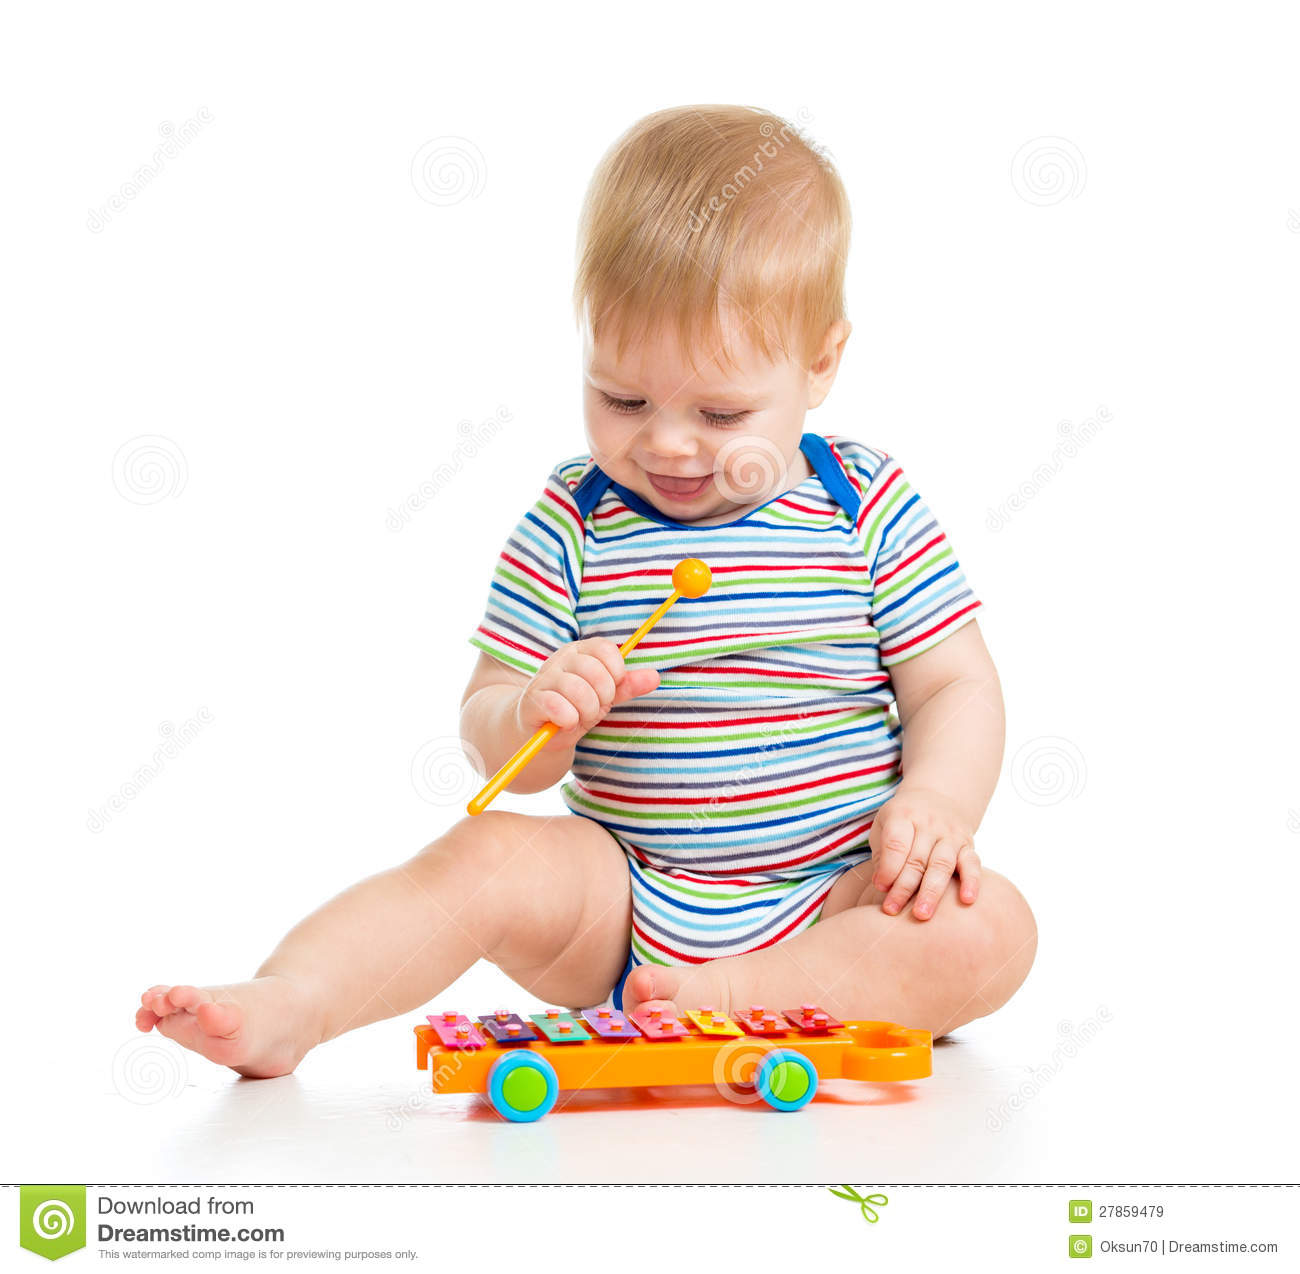 Musical Toys For Toddlers Boys : Funny child playing with musical toys royalty free stock